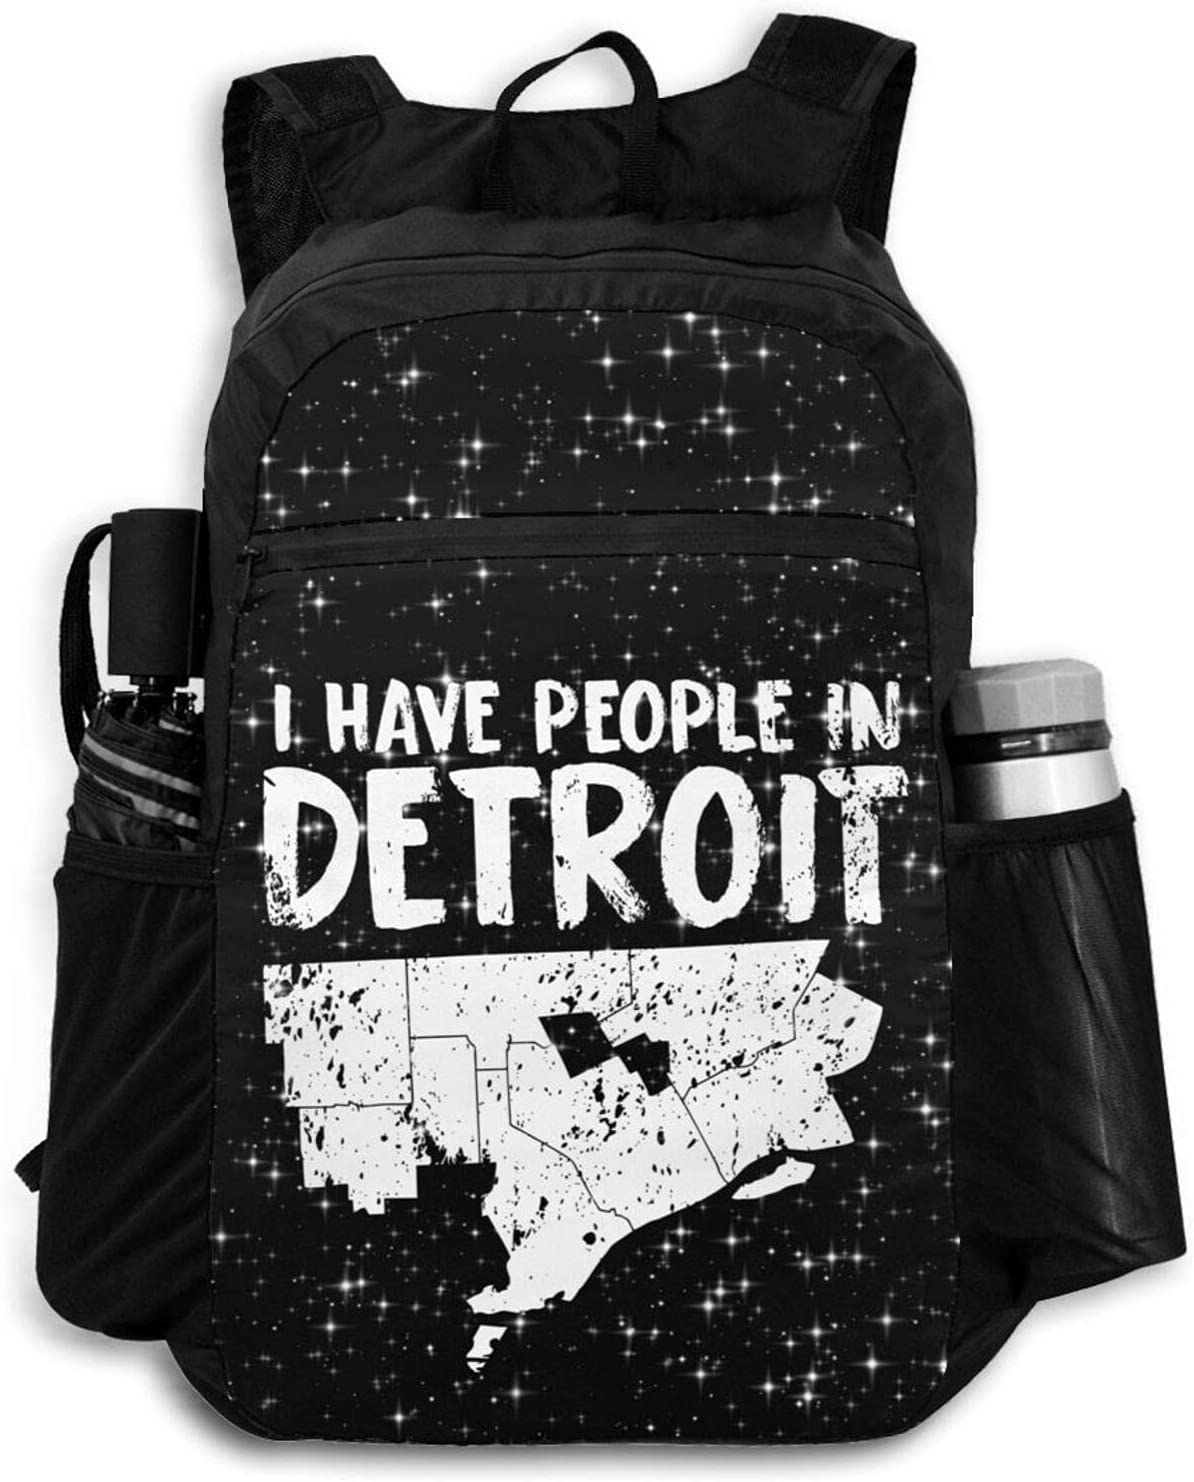 Zolama Now on sale I Have People in mart Detroit for Backpacks Pac Men Cute Women